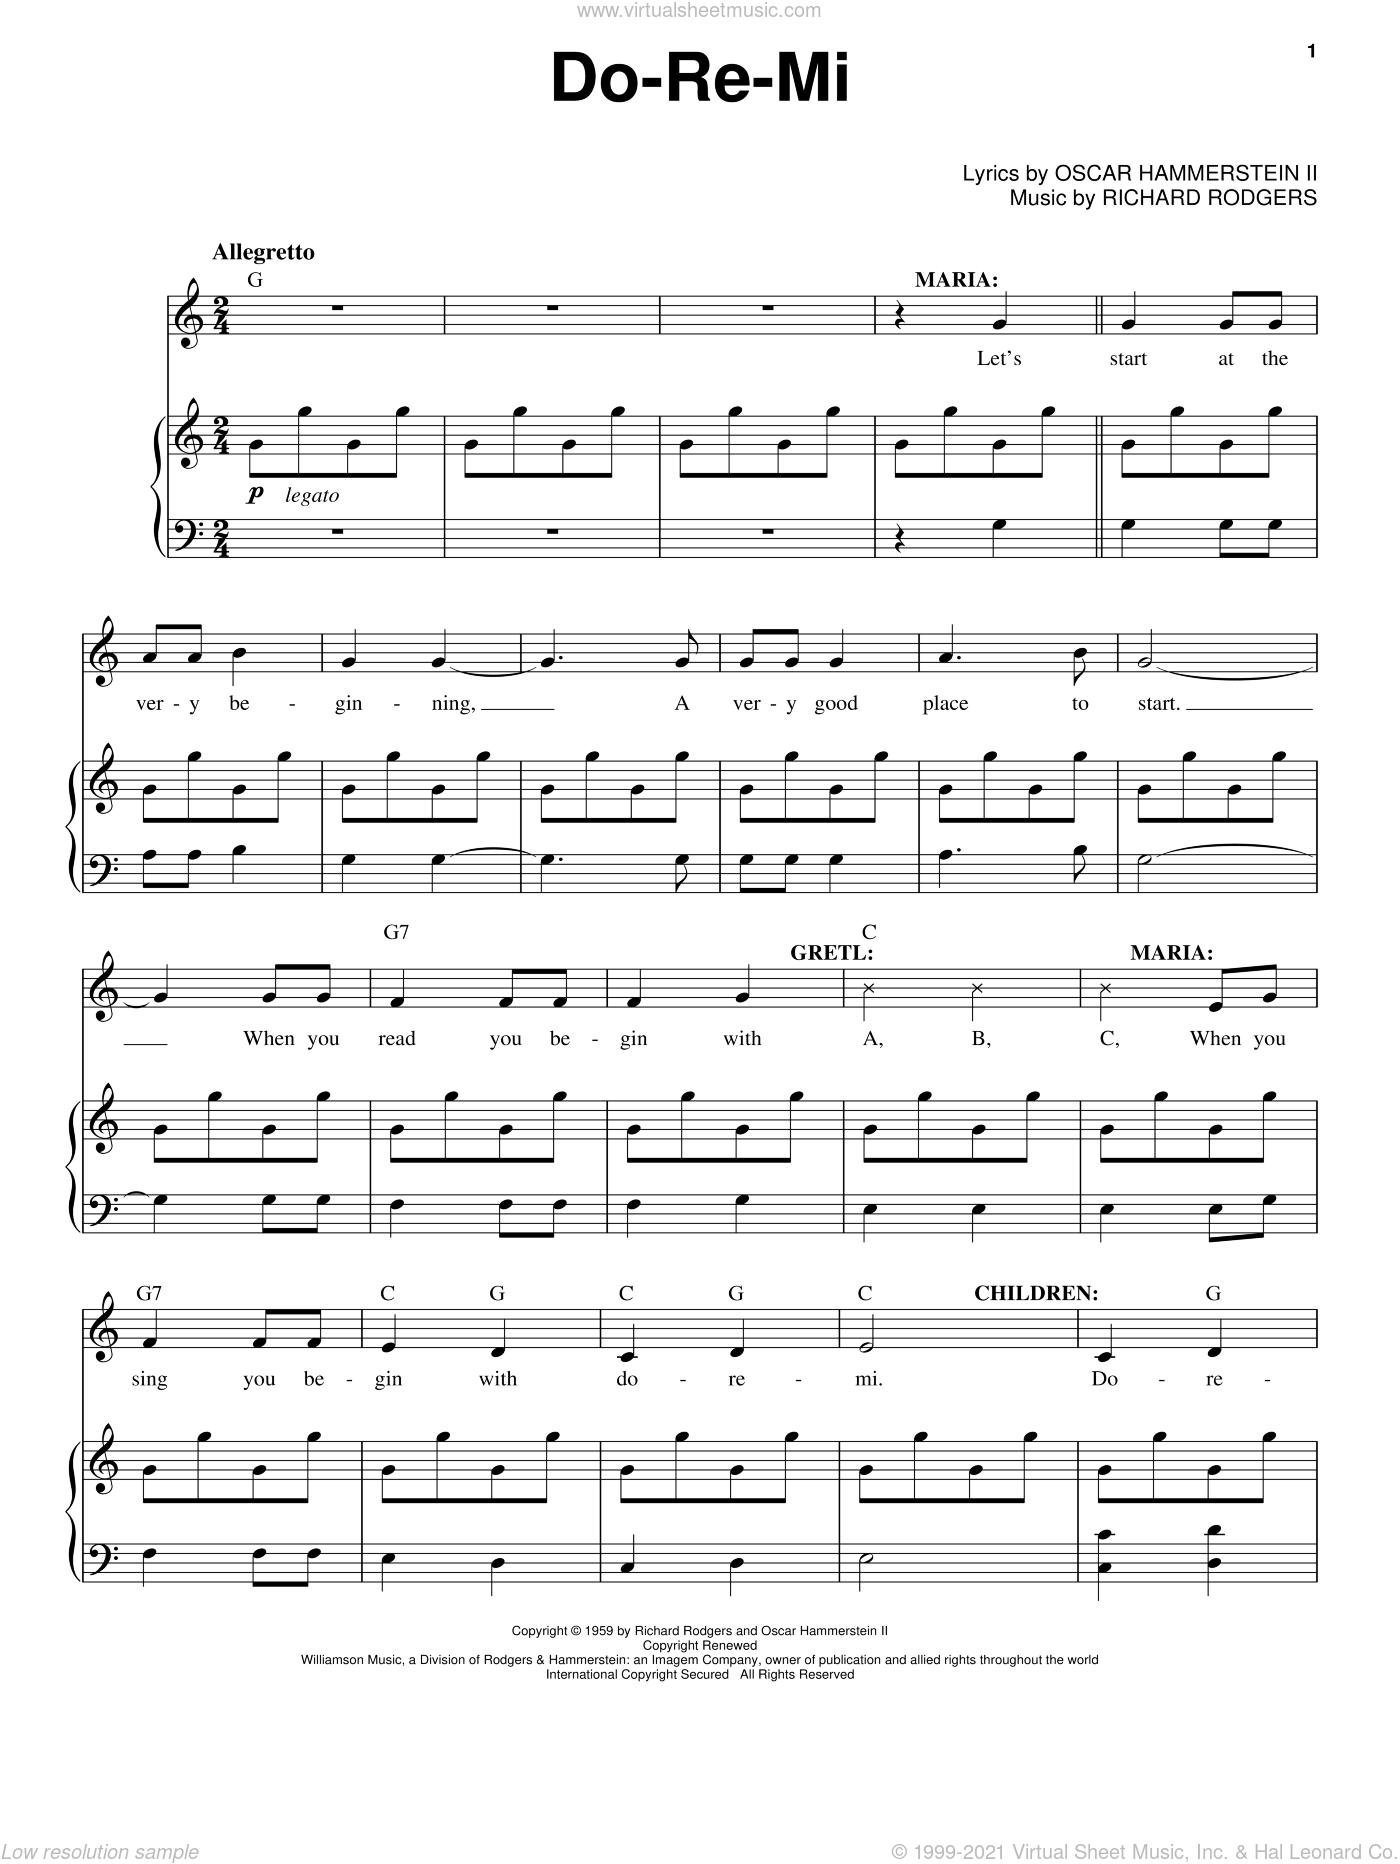 Do-Re-Mi sheet music for voice and piano by Rodgers & Hammerstein, Oscar II Hammerstein and Richard Rodgers, intermediate skill level